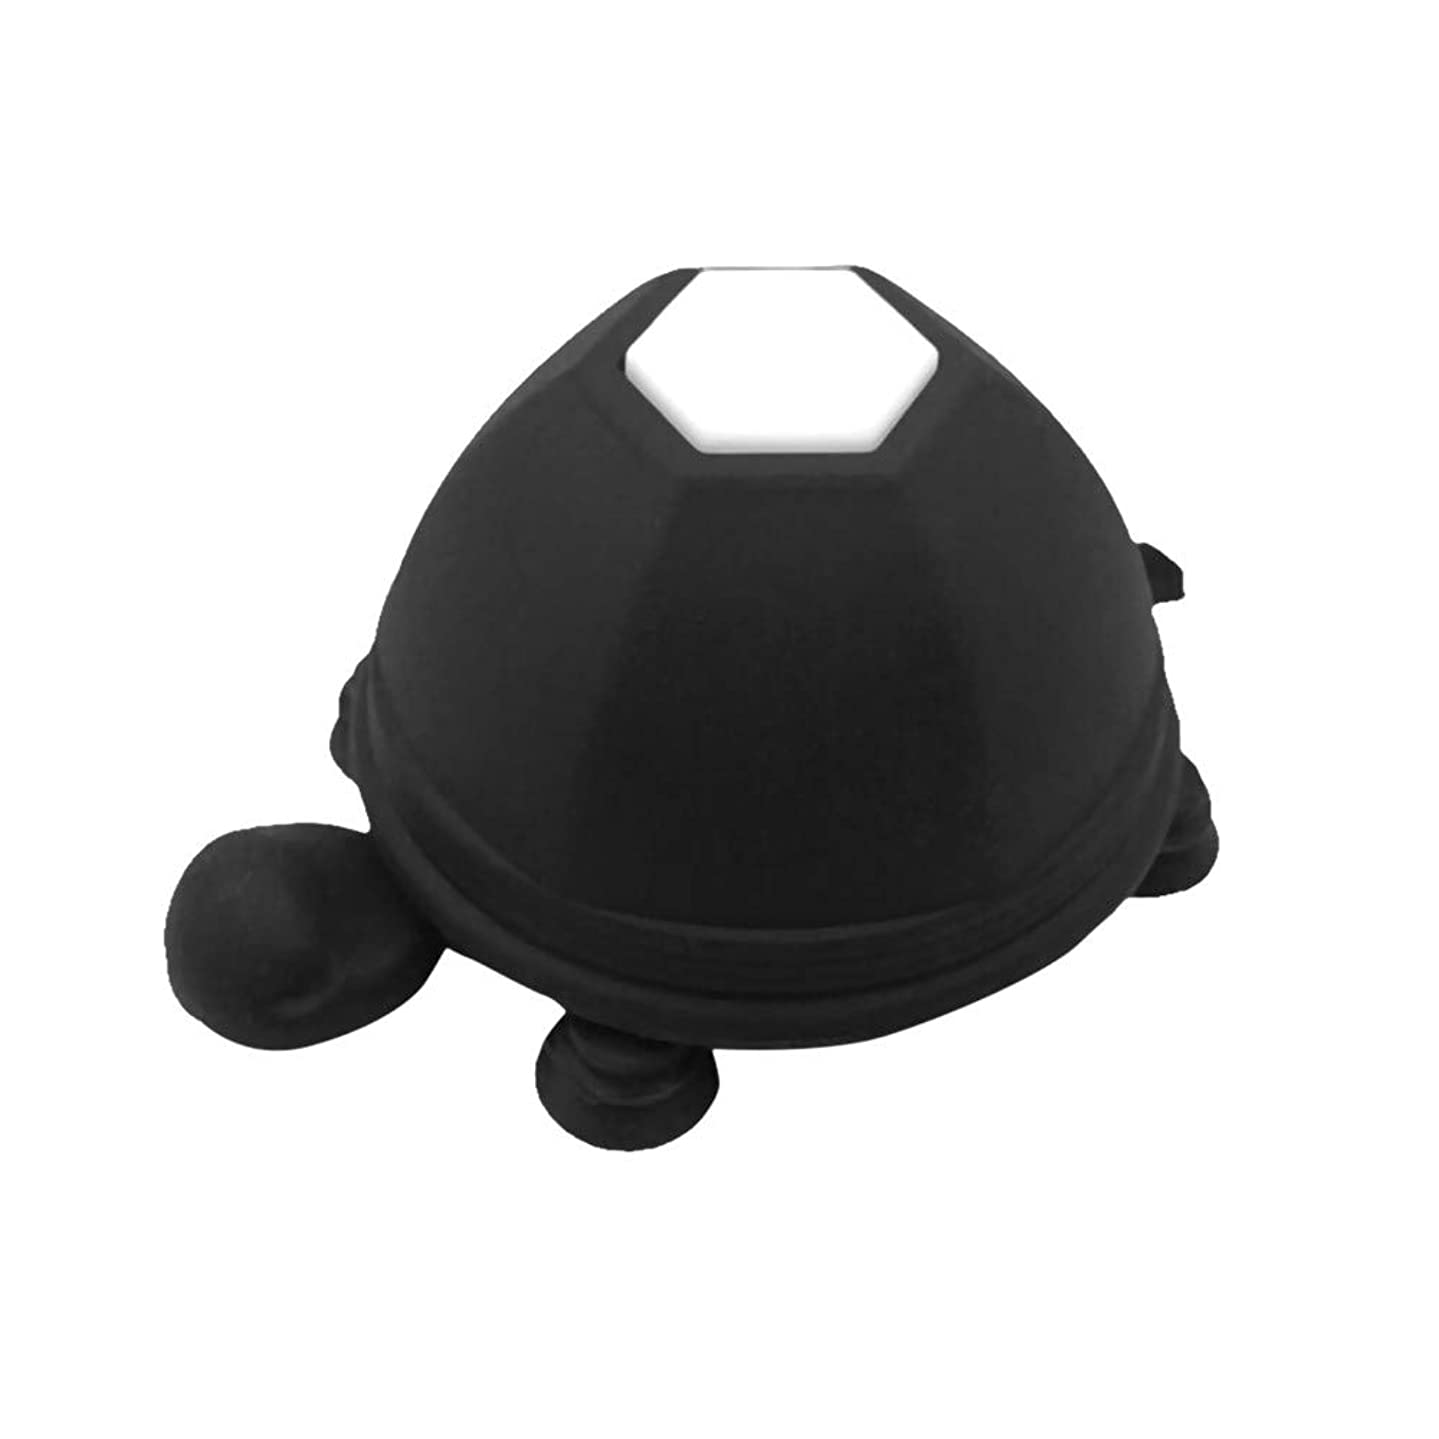 Sconary Silicone Novel Turtle Shaped Cable Earphone Winder Funny Lovely for Mobile Phone Holder Stand Top Durable (Black)